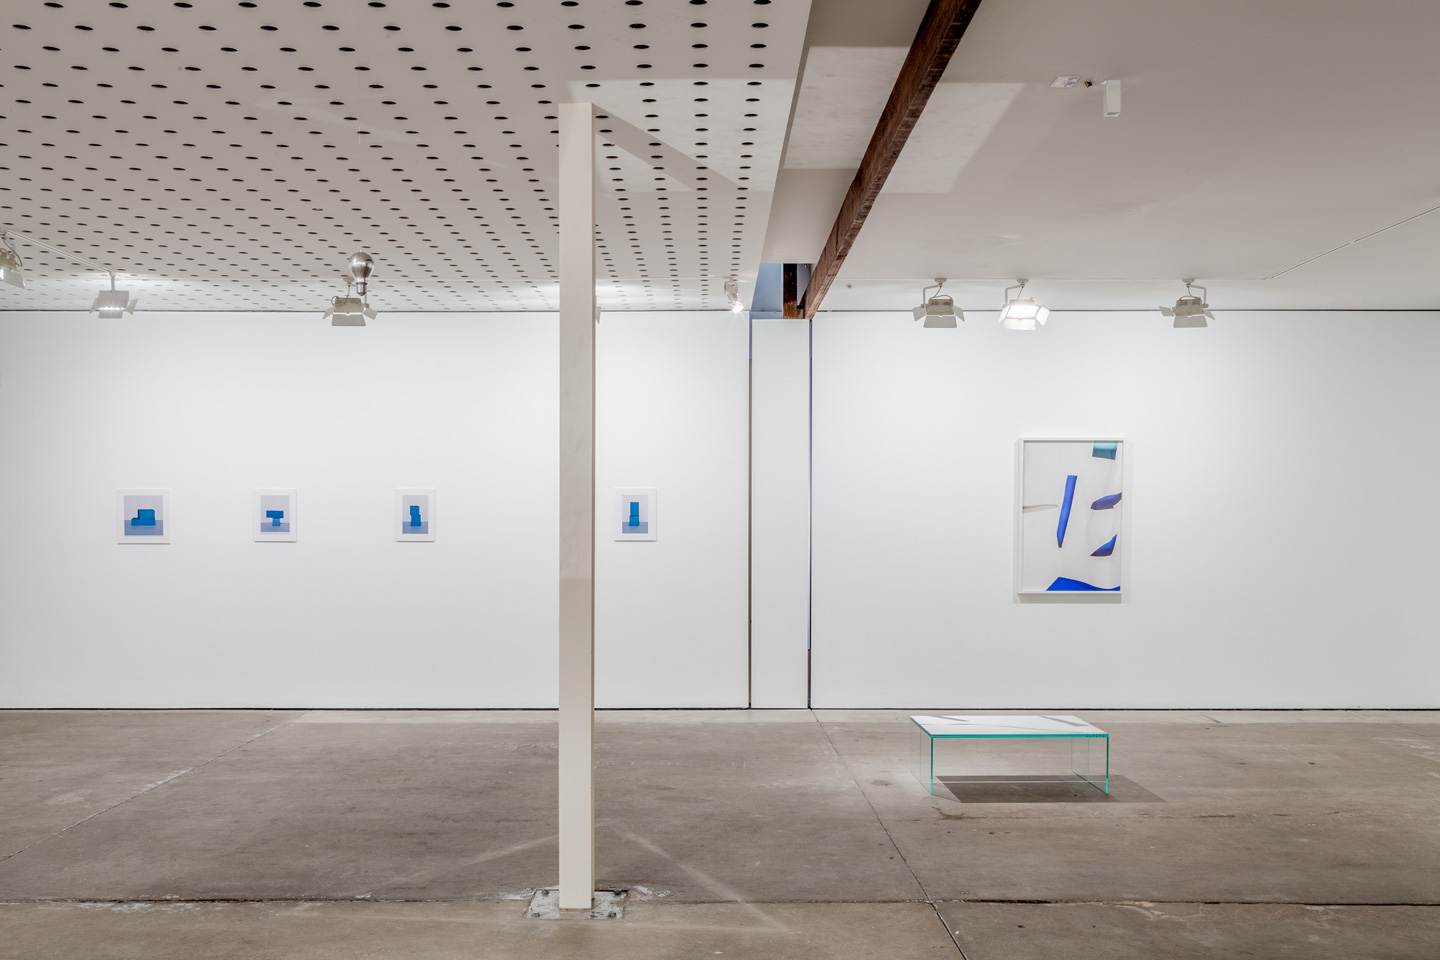 <p>Georgia Hutchison and Arini Byng. Installation view, Lit from the Top: Sculpture through Photography, Centre for Contemporary Photography. Photography: Christo Crocker.</p>